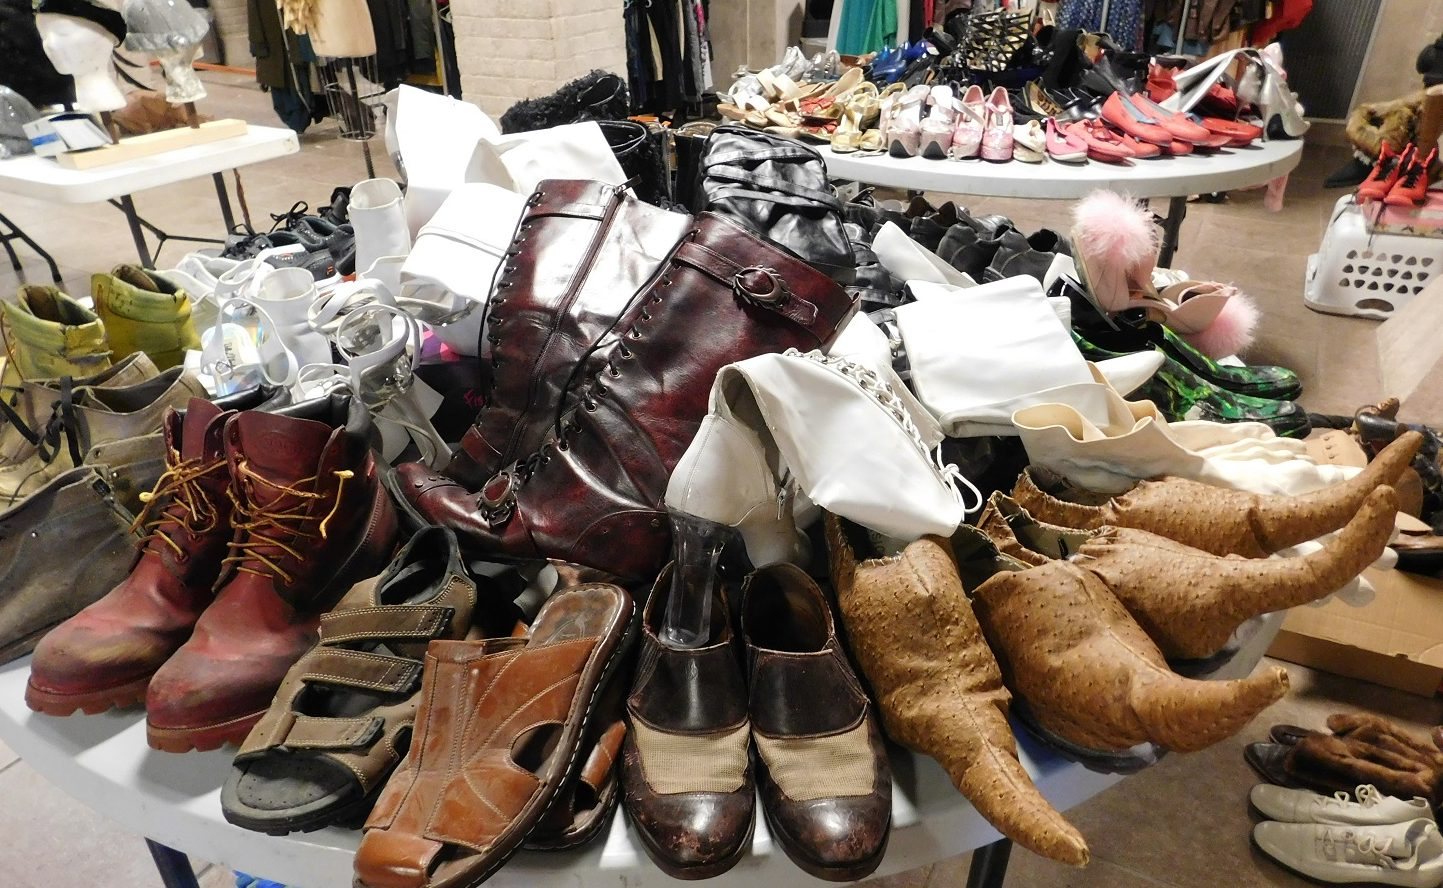 Shoes in all sizes and shapes will be for sale during the Hipp Costume Extravaganza. Photo by Gainesville downtown)